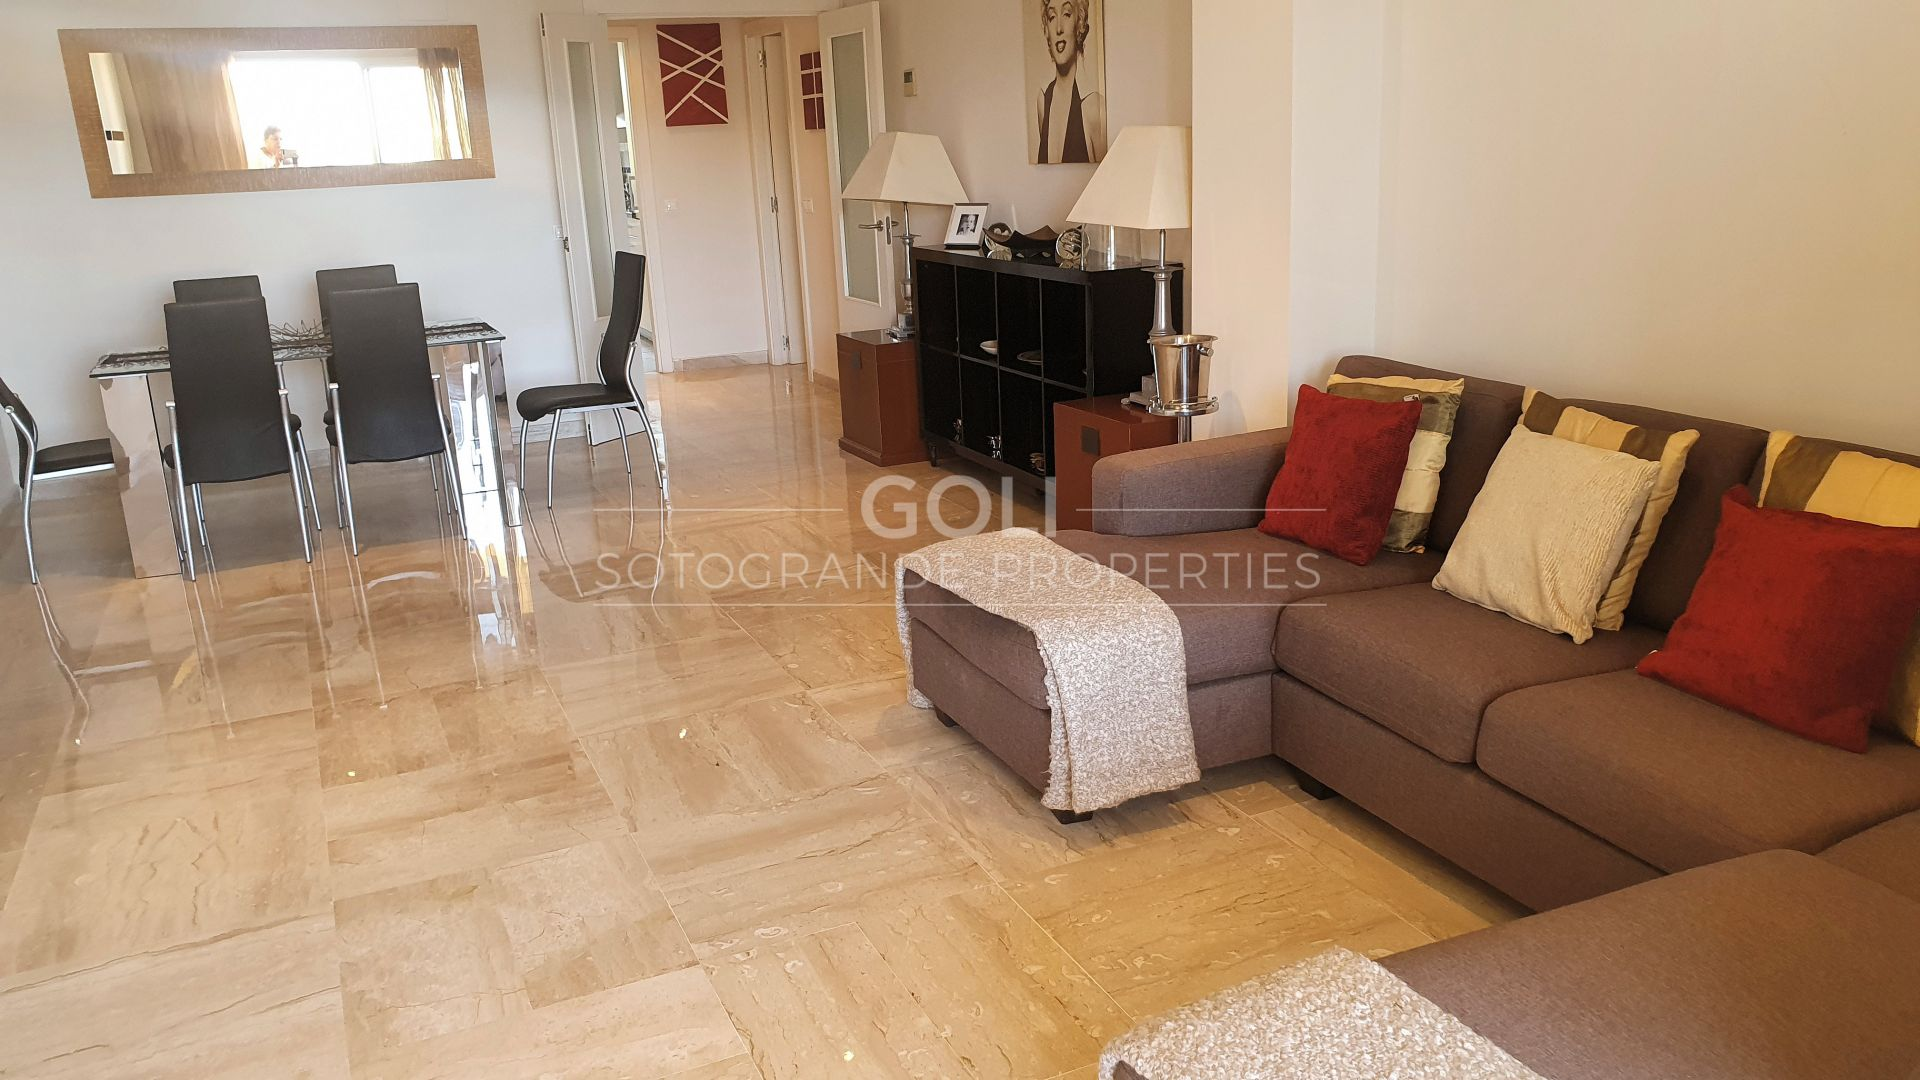 3 bedrooms apartment overlooking the Marina